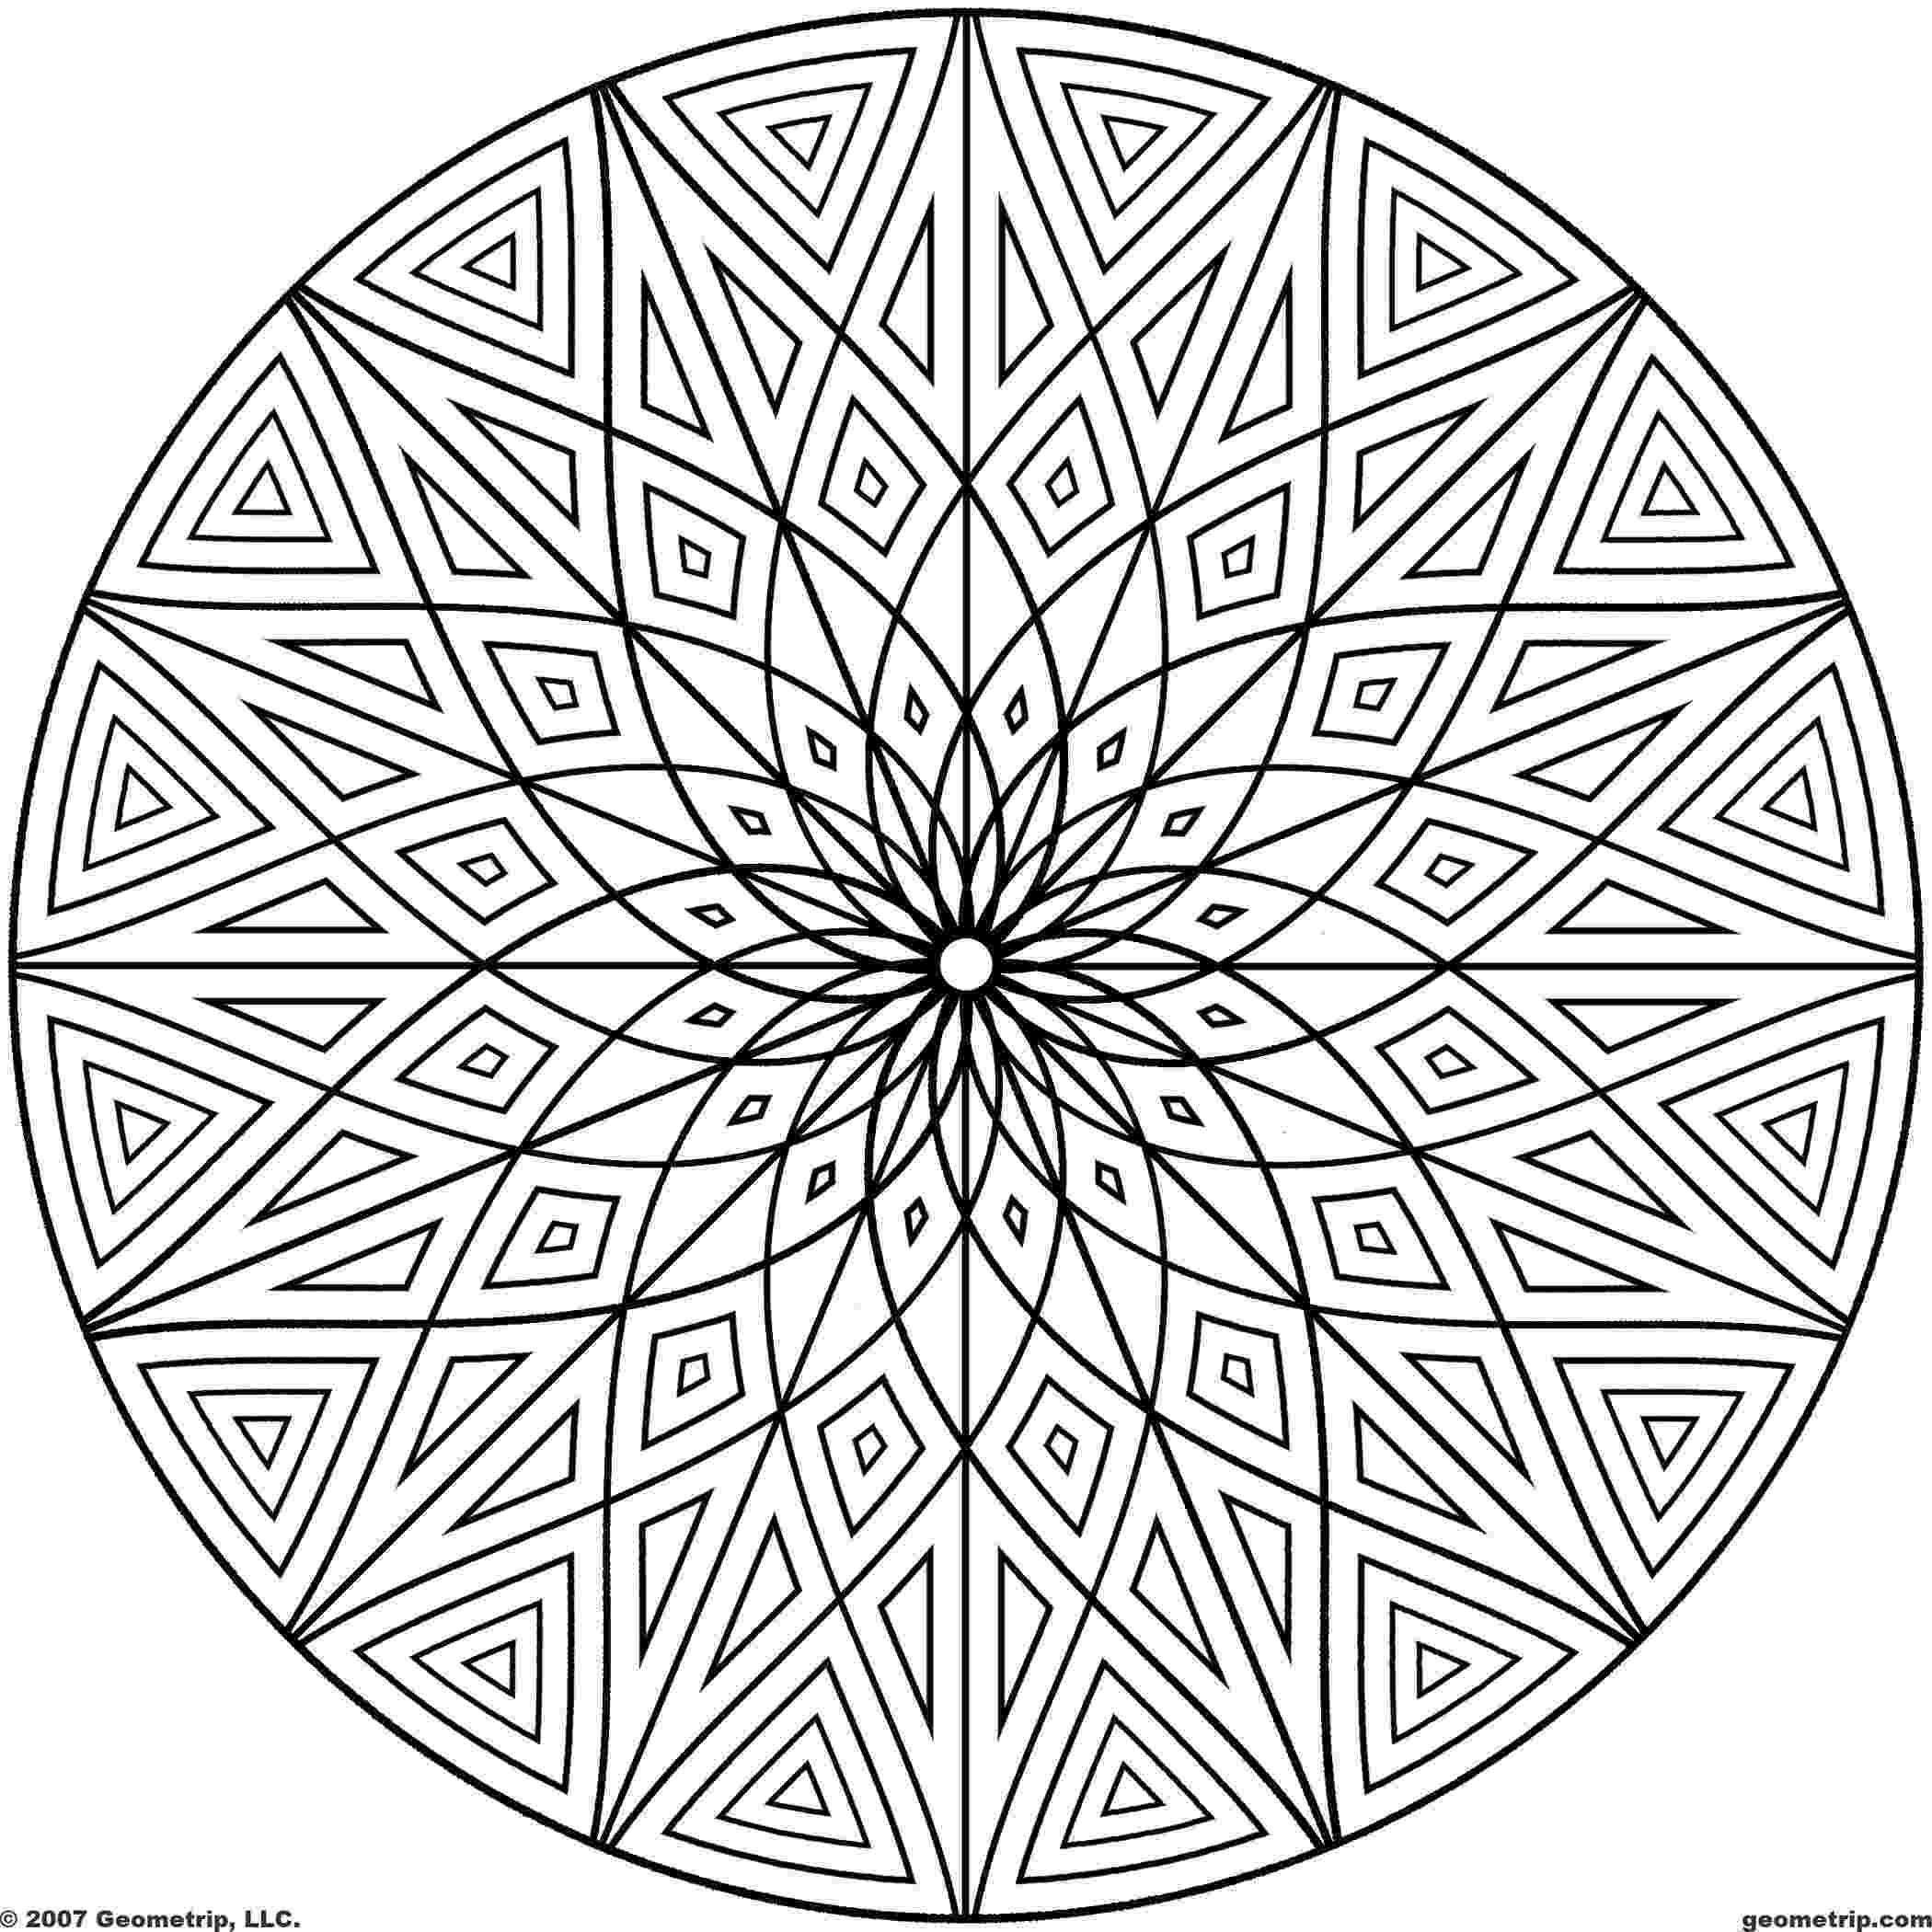 colouring pages of patterns geometric patterns for kids to color coloring pages for colouring pages of patterns